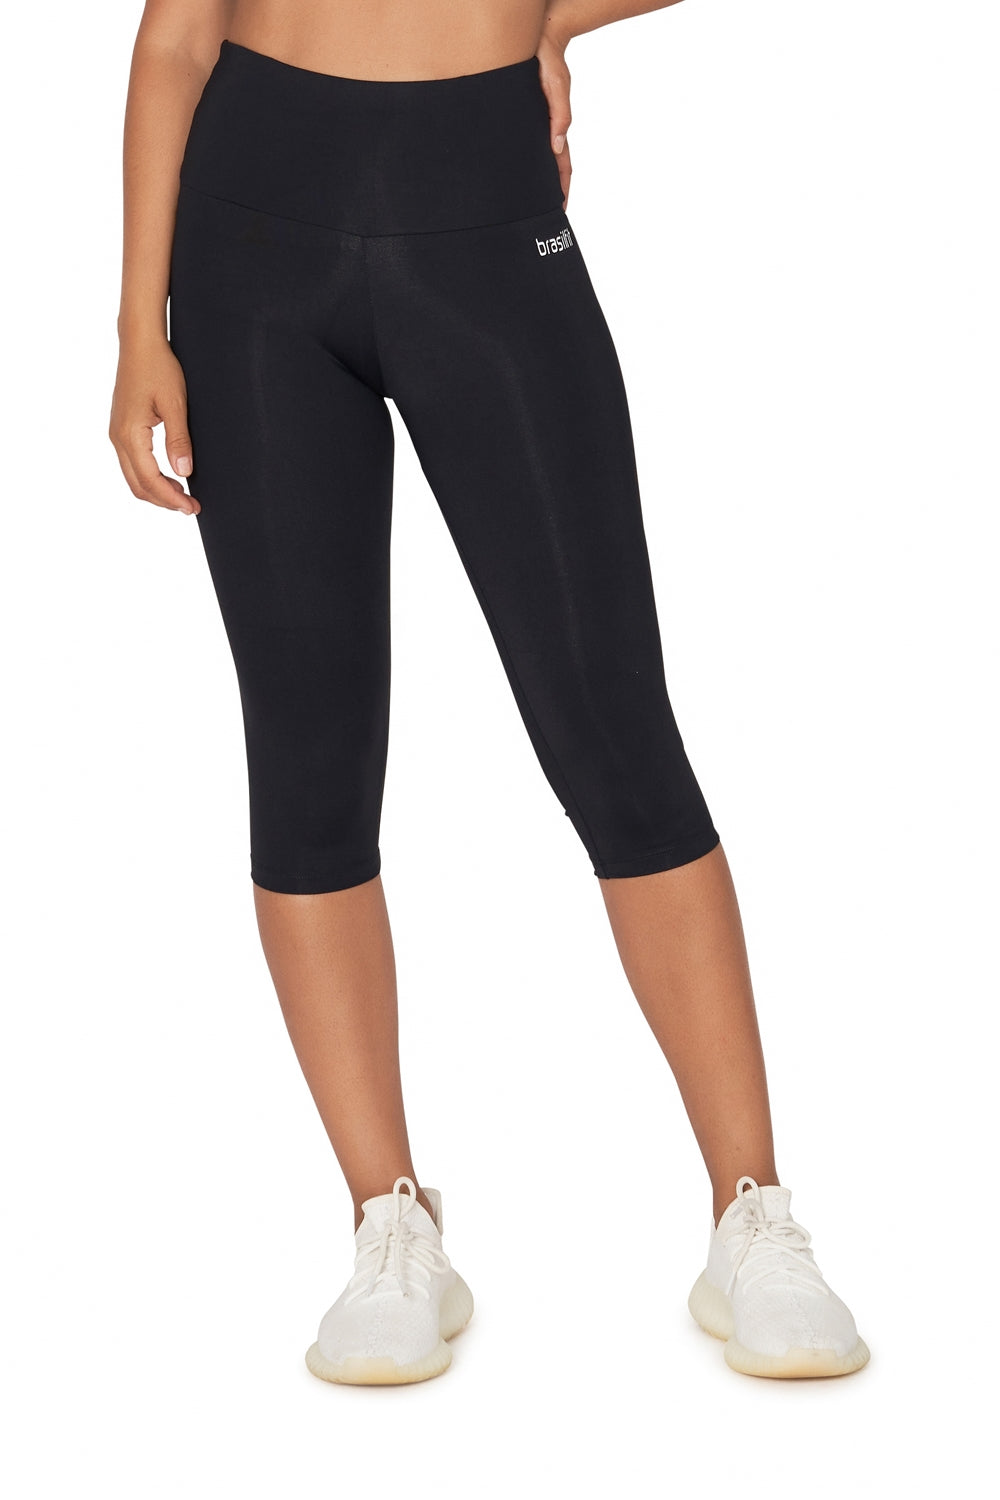 High Waisted Basic Xtreme Under Knee Tights